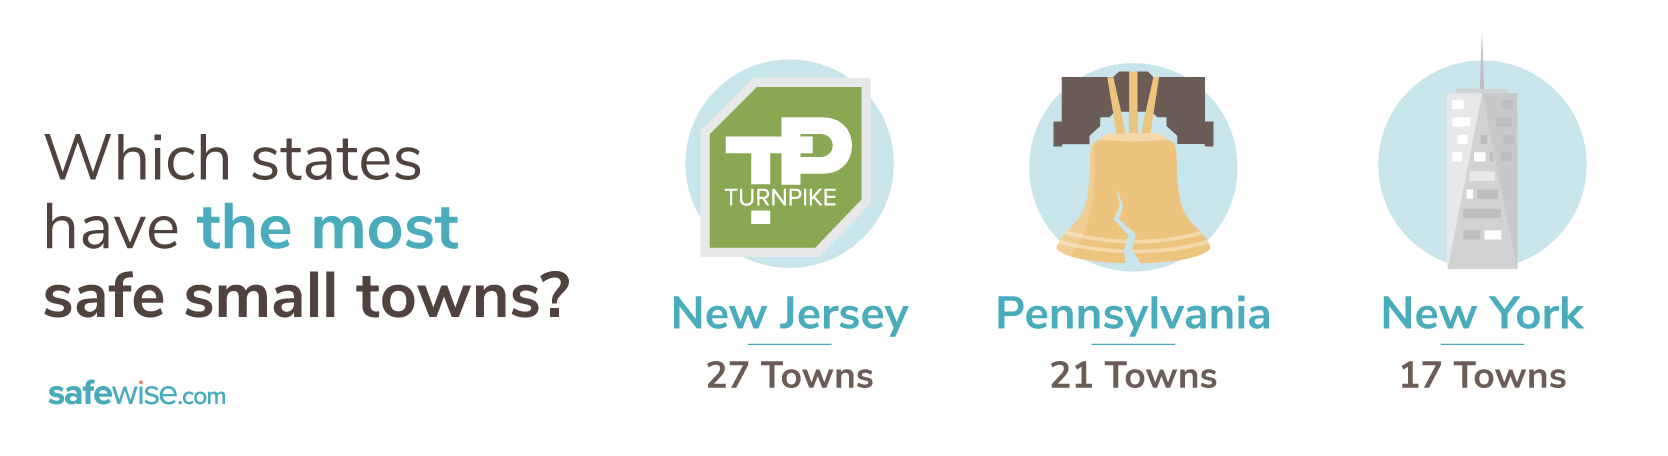 States with the most safe small towns 2020 graphic